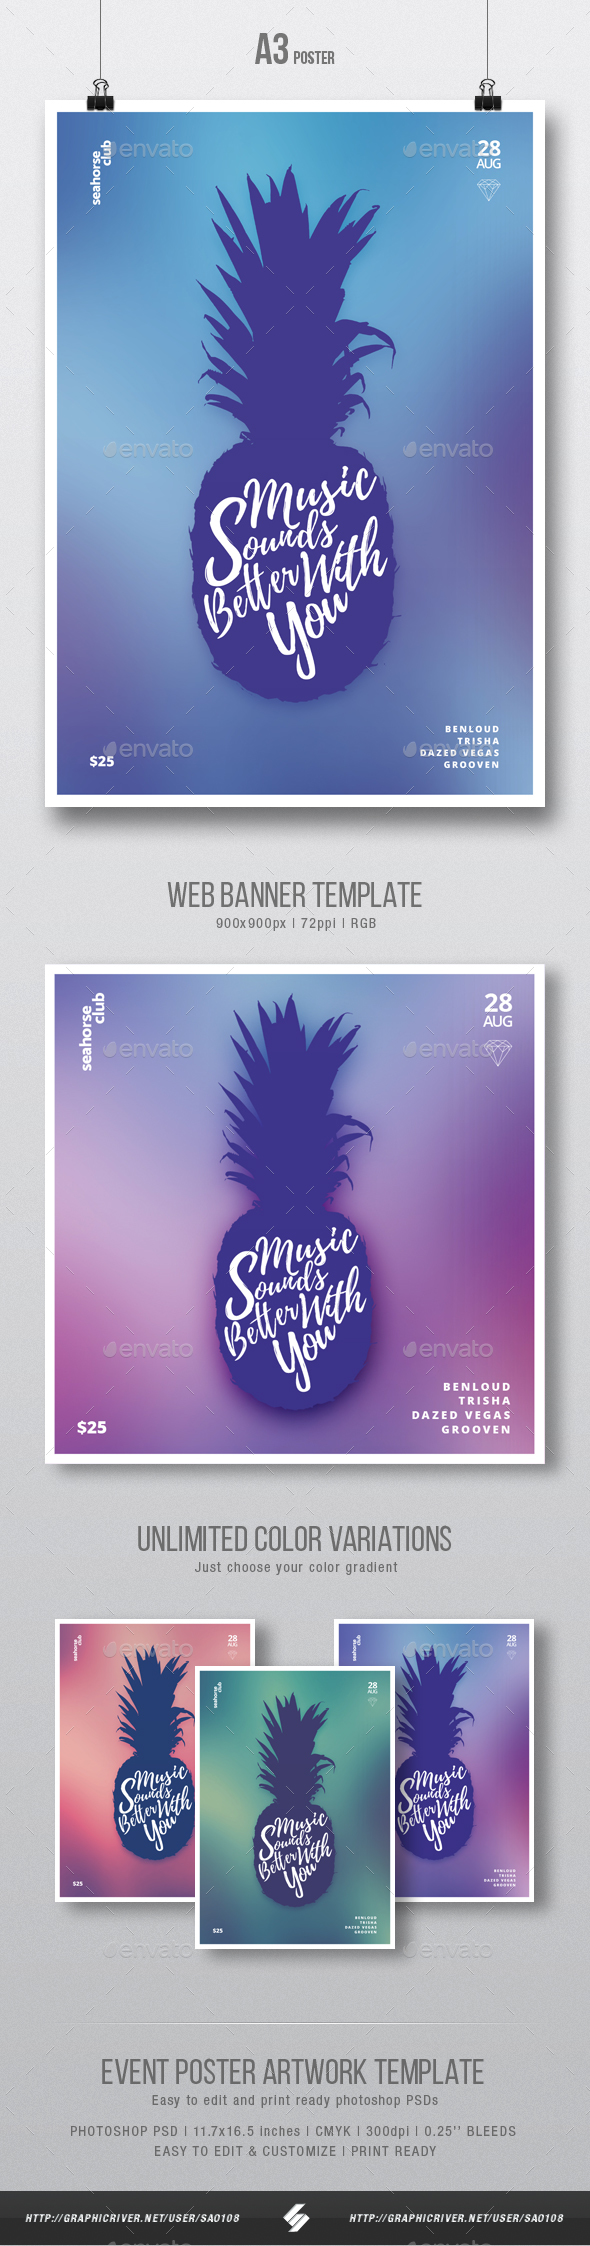 Summer House Music - Minimal Party Flyer / Poster Template A3 - Clubs & Parties Events